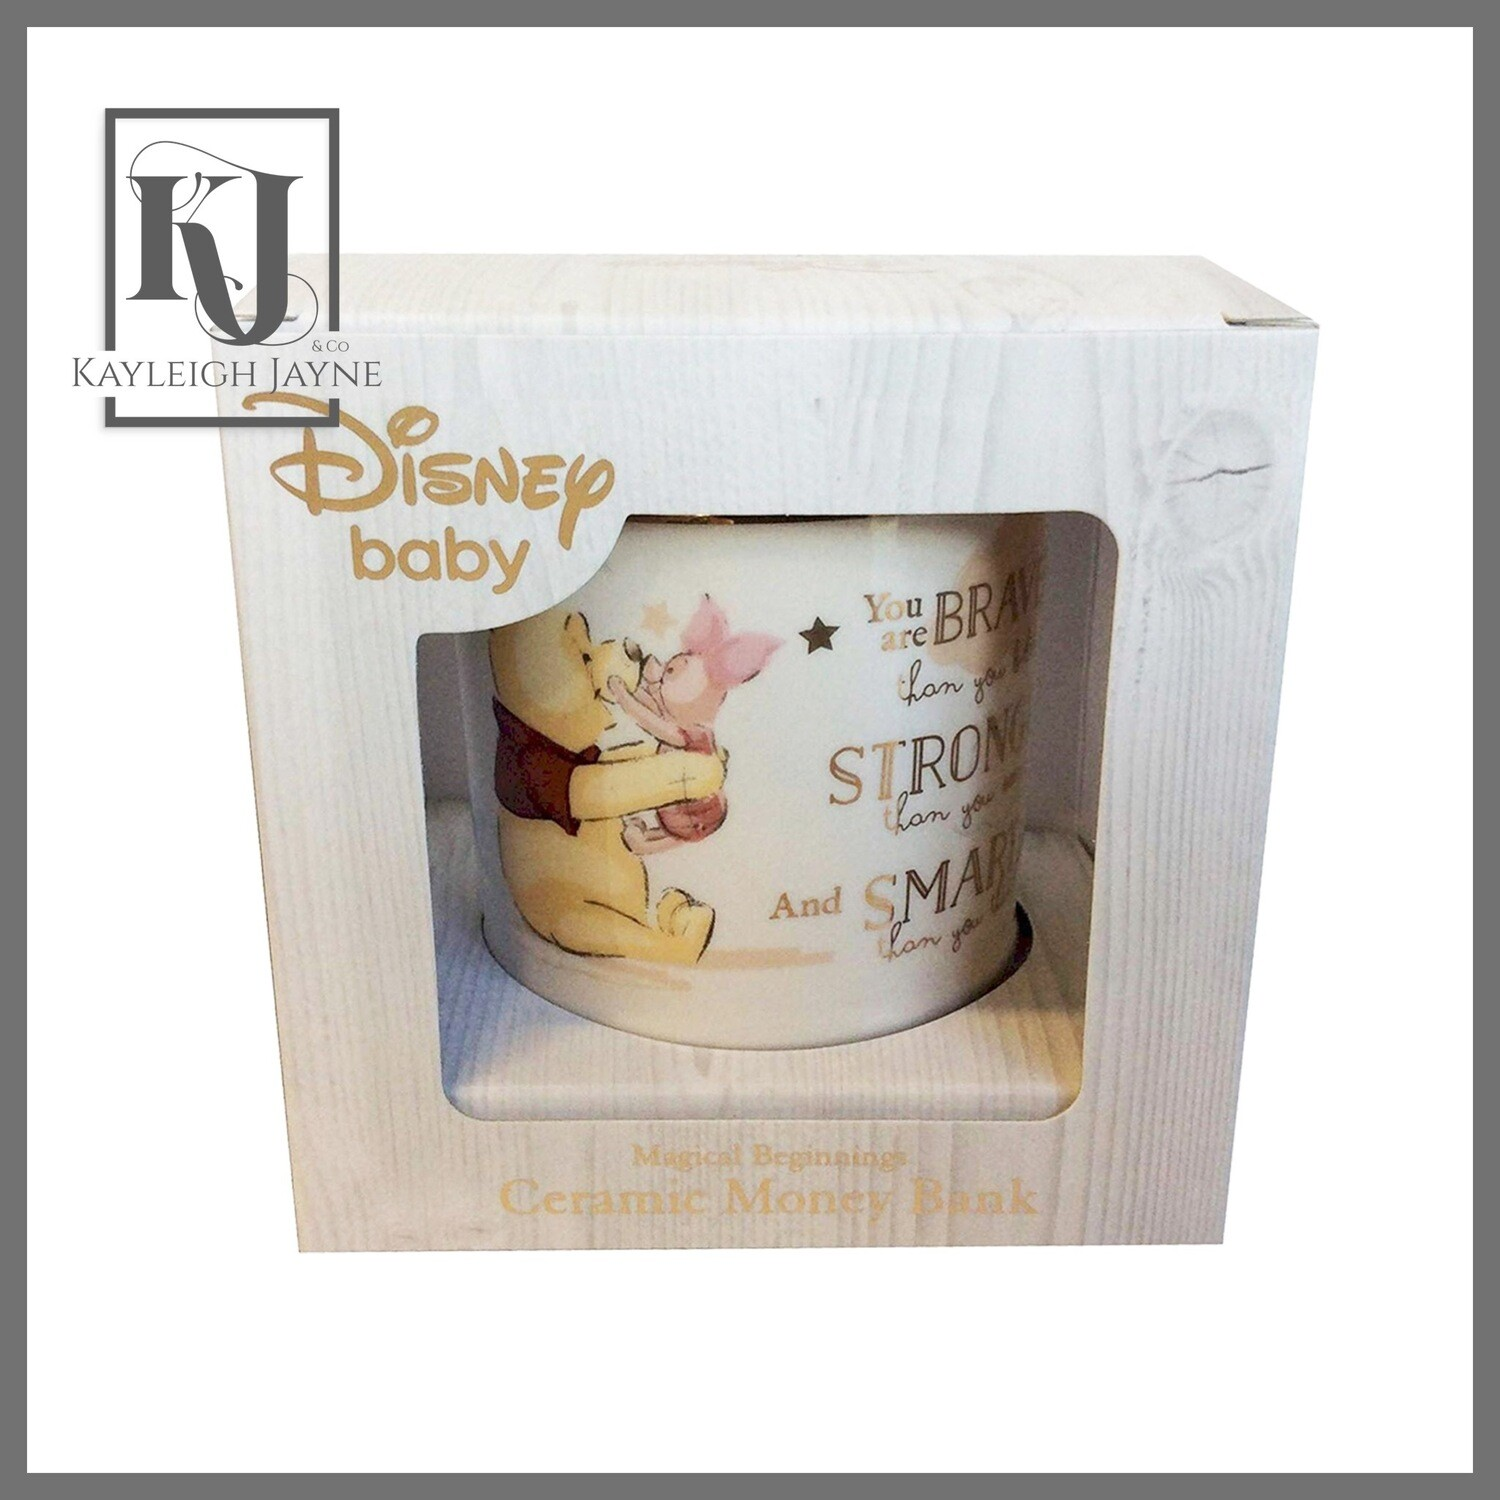 DISNEY MAGICAL BEGINNINGS CERAMIC MONEY BANK - WINNIE THE POOH (Can be personalised)